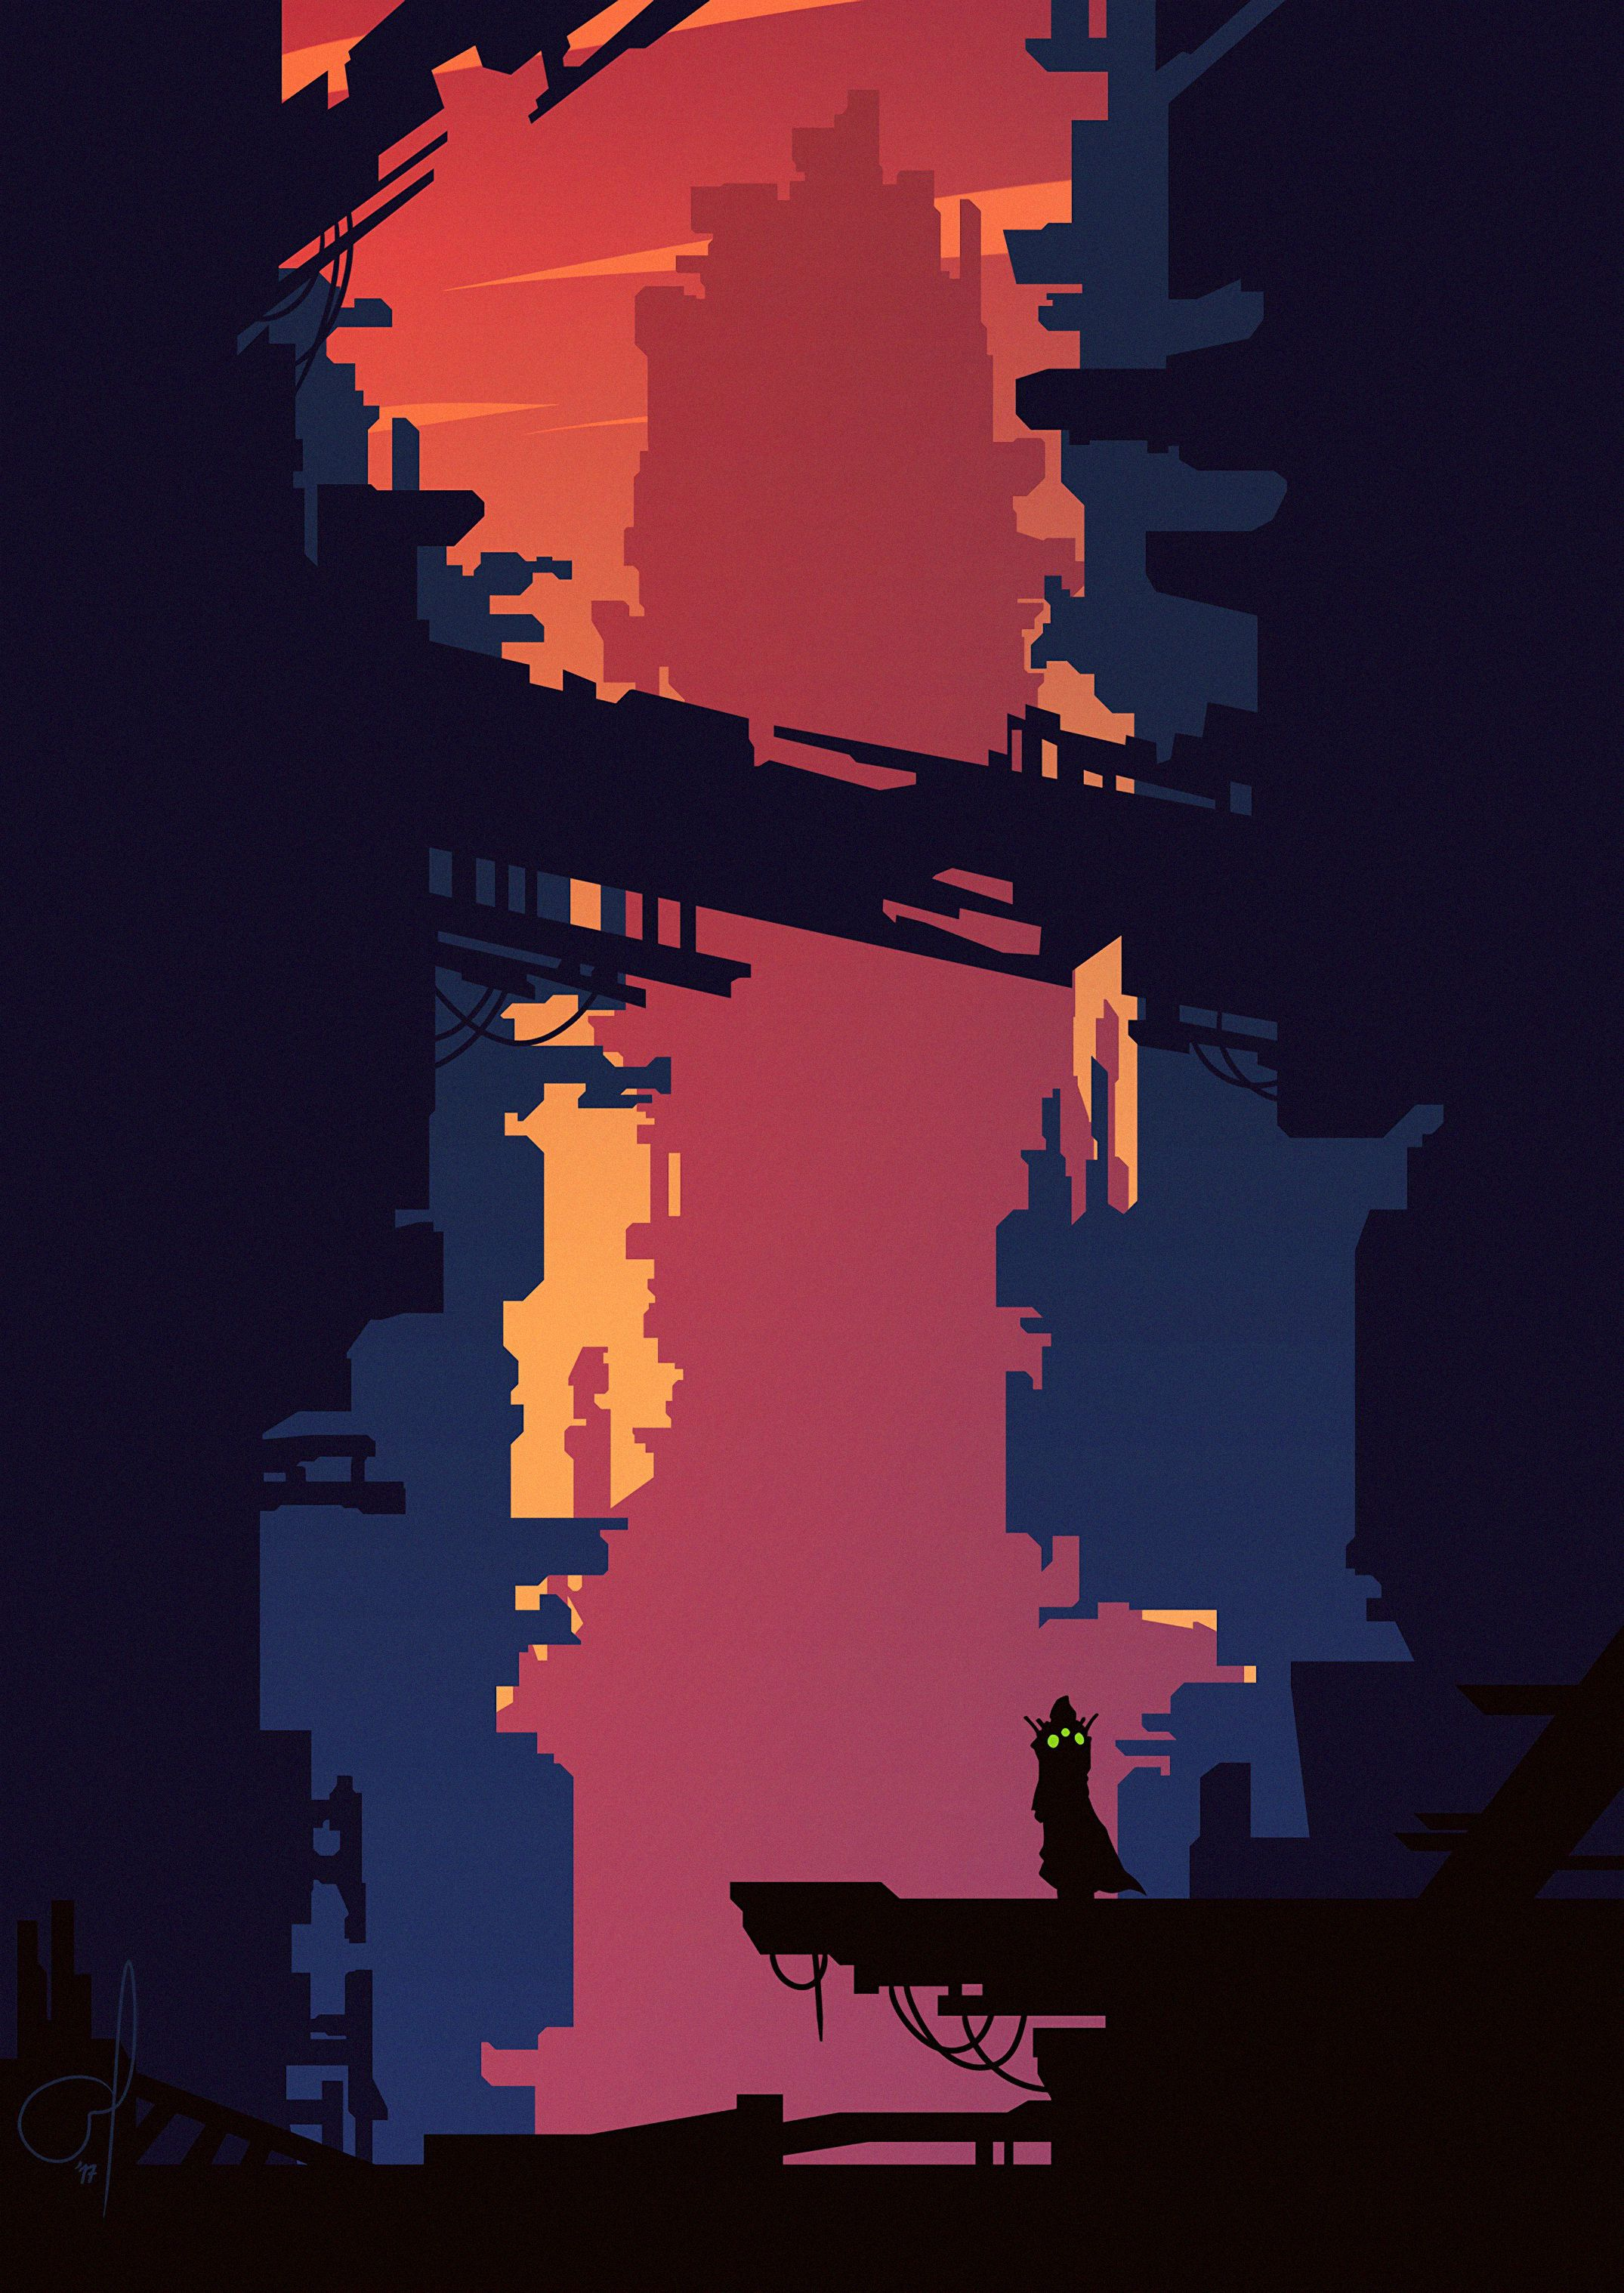 140952 download wallpaper Vector, City, Silhouette, Art, Building screensavers and pictures for free